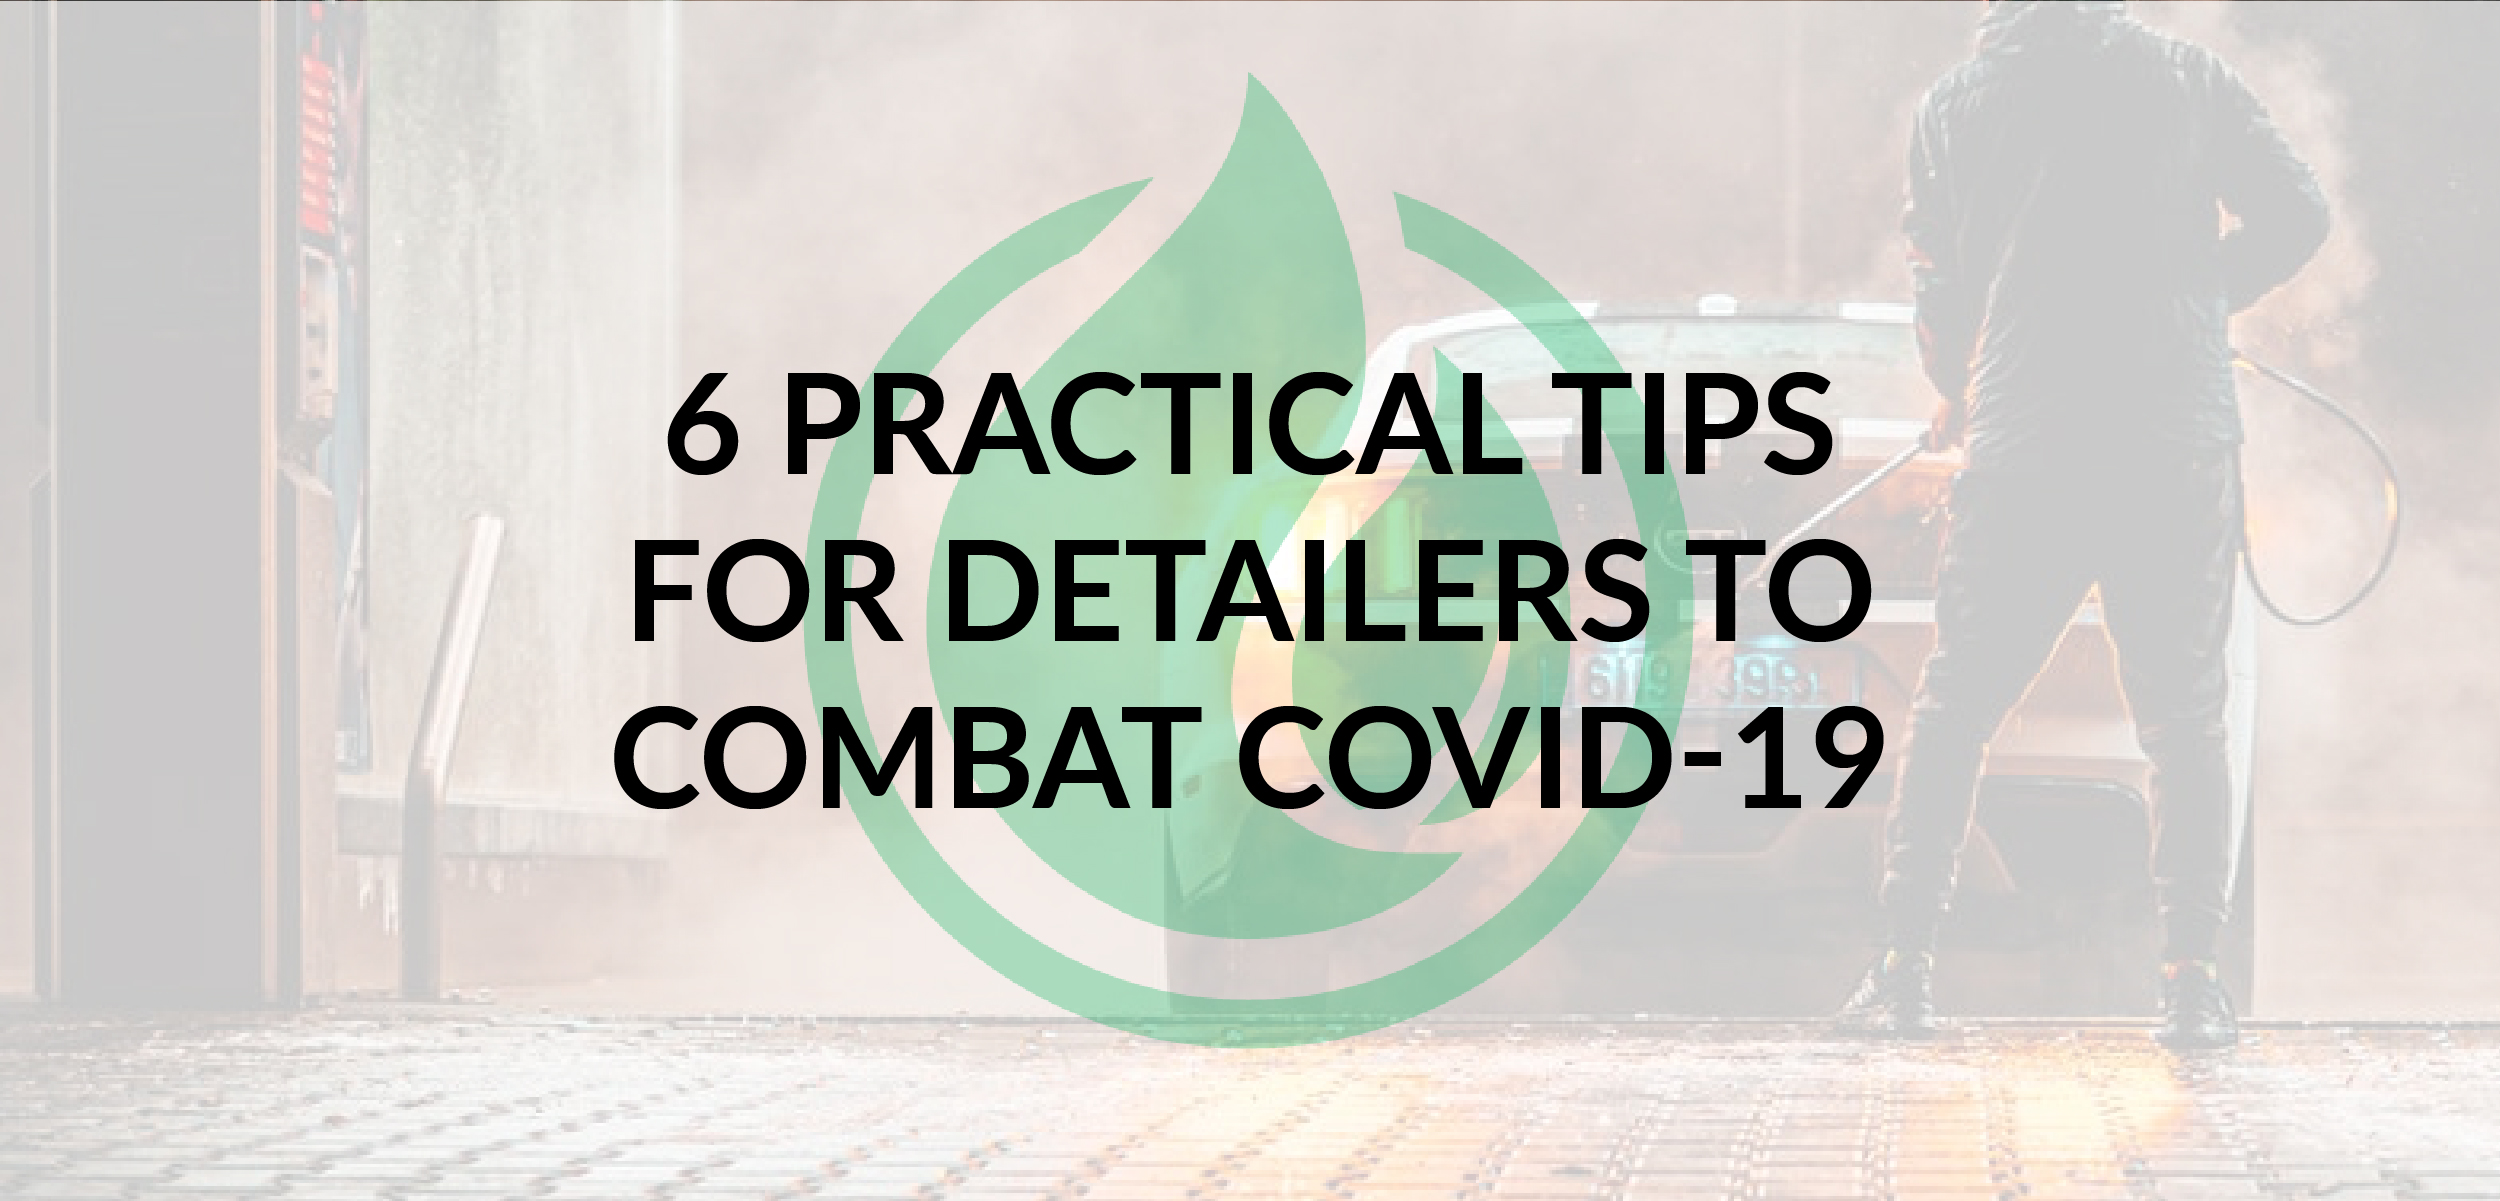 6 Practical Tips for Detailers to Combat COVID-19